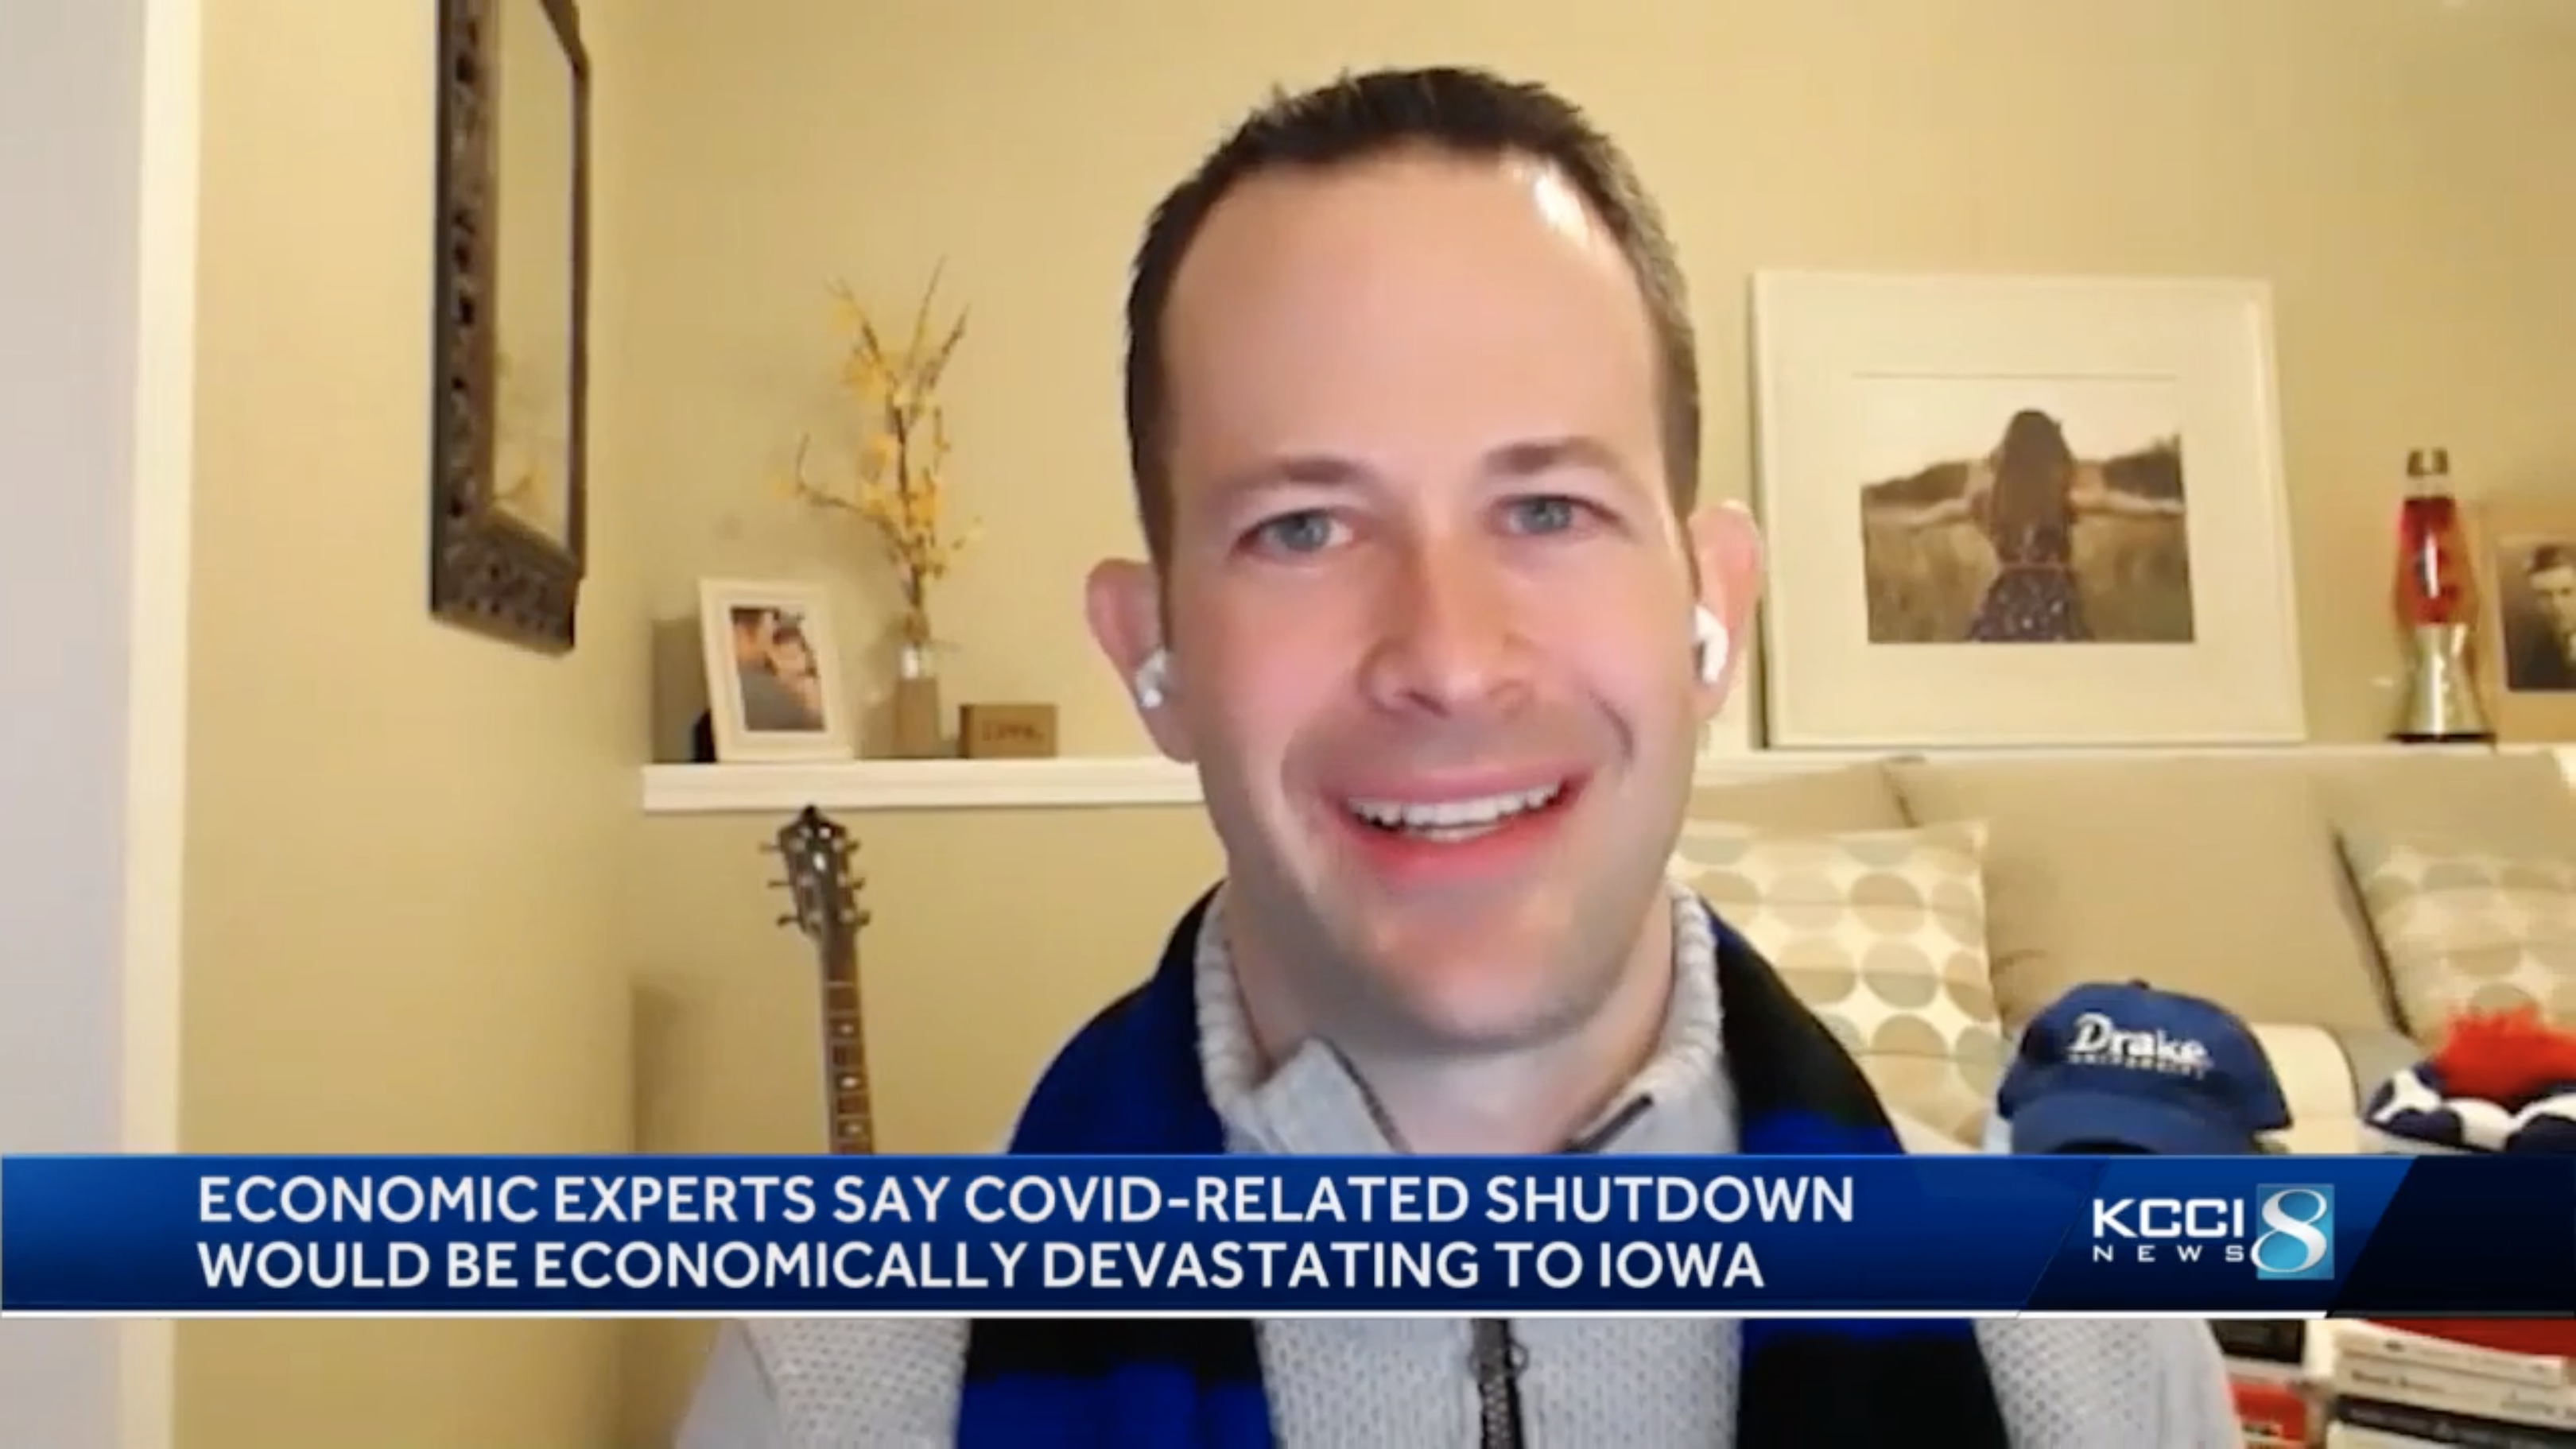 Economic Experts Warn COVID-19 Shutdowns Could Devastate Iowa